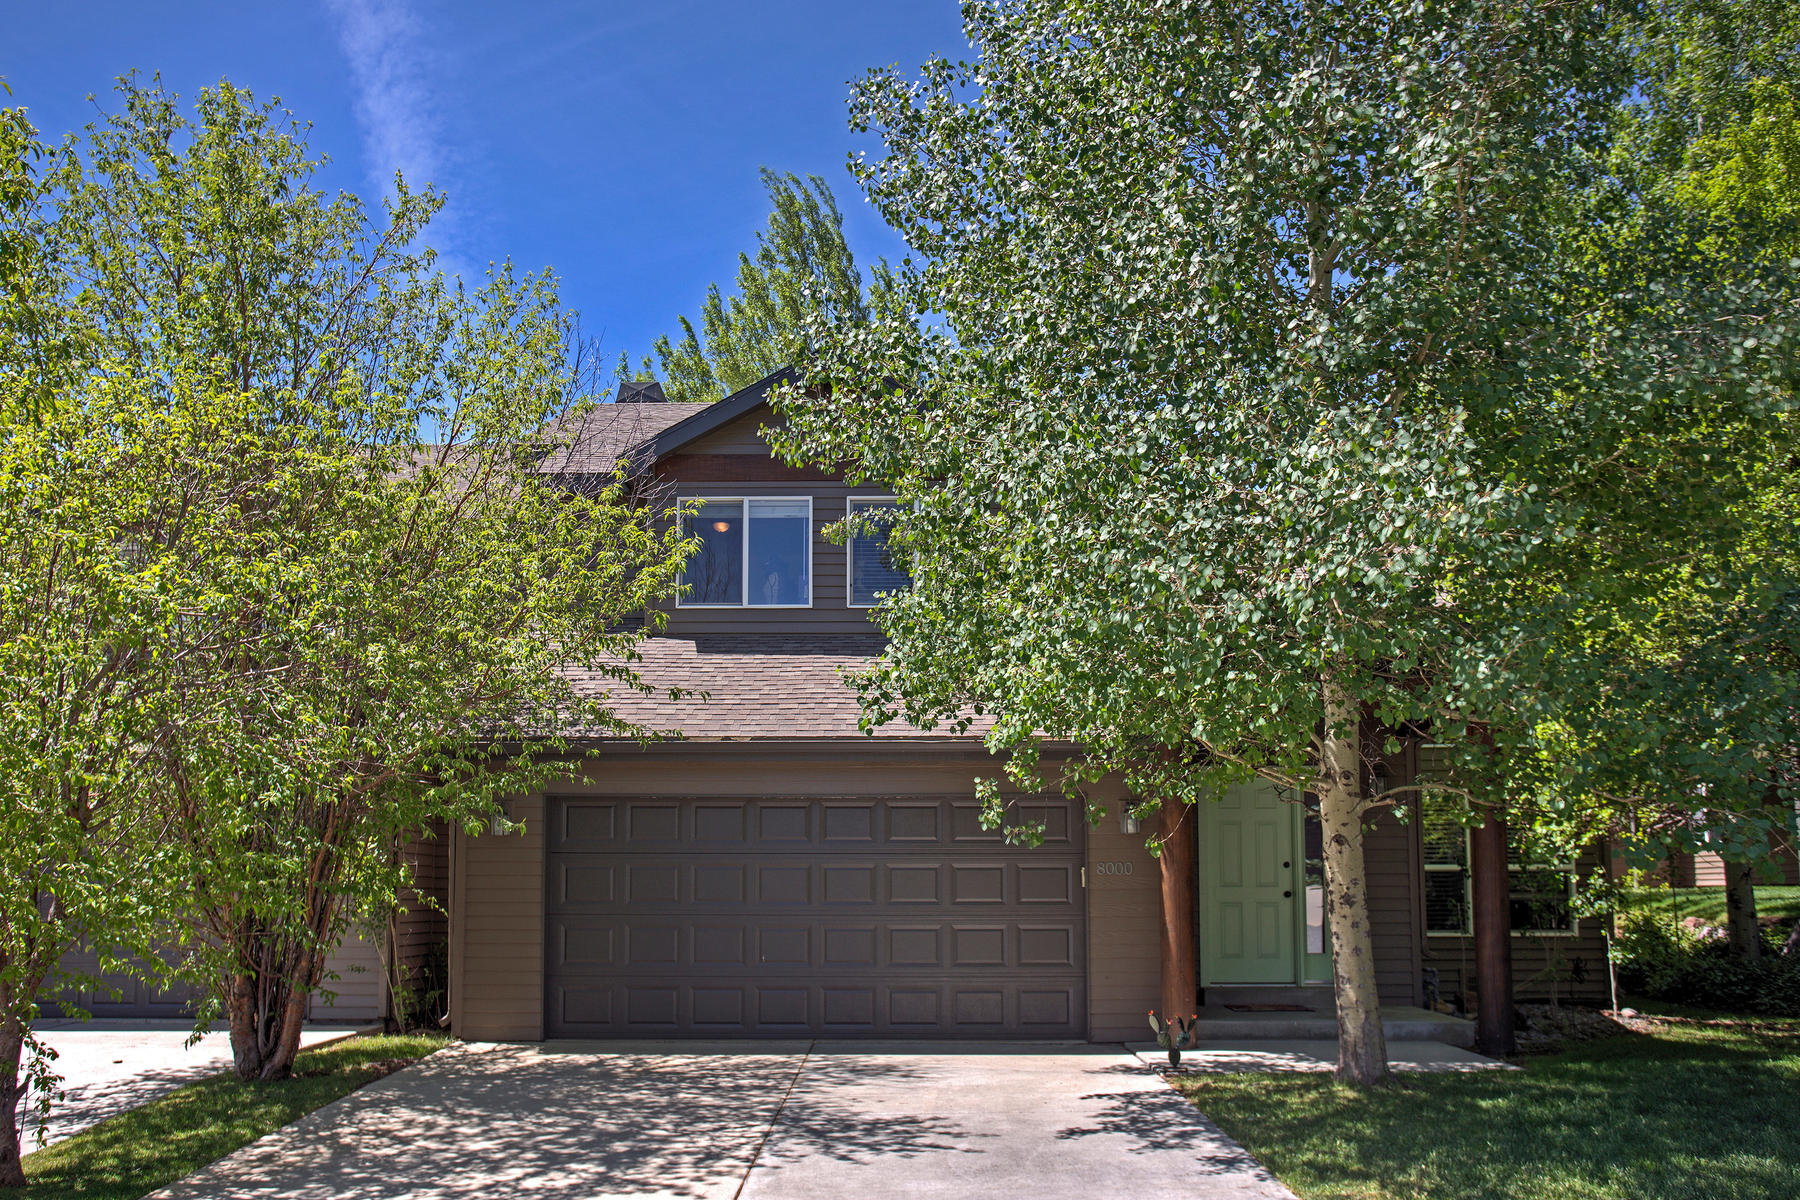 Single Family Home for Sale at Excellent Opportunity for Park City Area 8000 Mustang Loop Rd Park City, Utah, 84098 United States